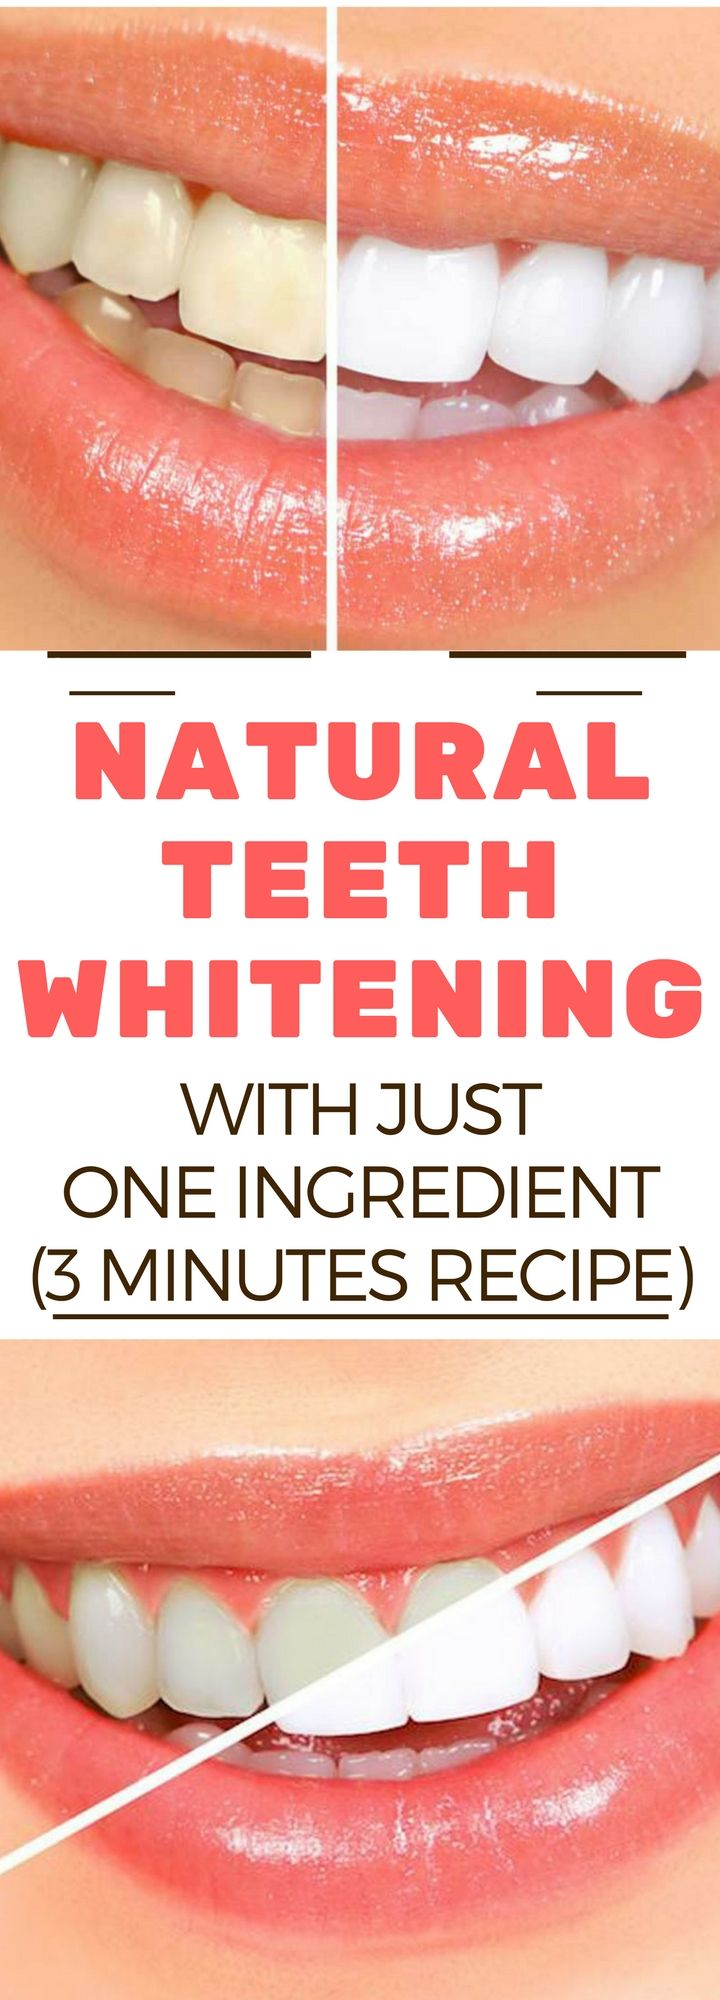 NATURAL TEETH WHITENING WITH JUST ONE INGREDIENT (3 MINUTES RECIPE!))..!!!! !!!